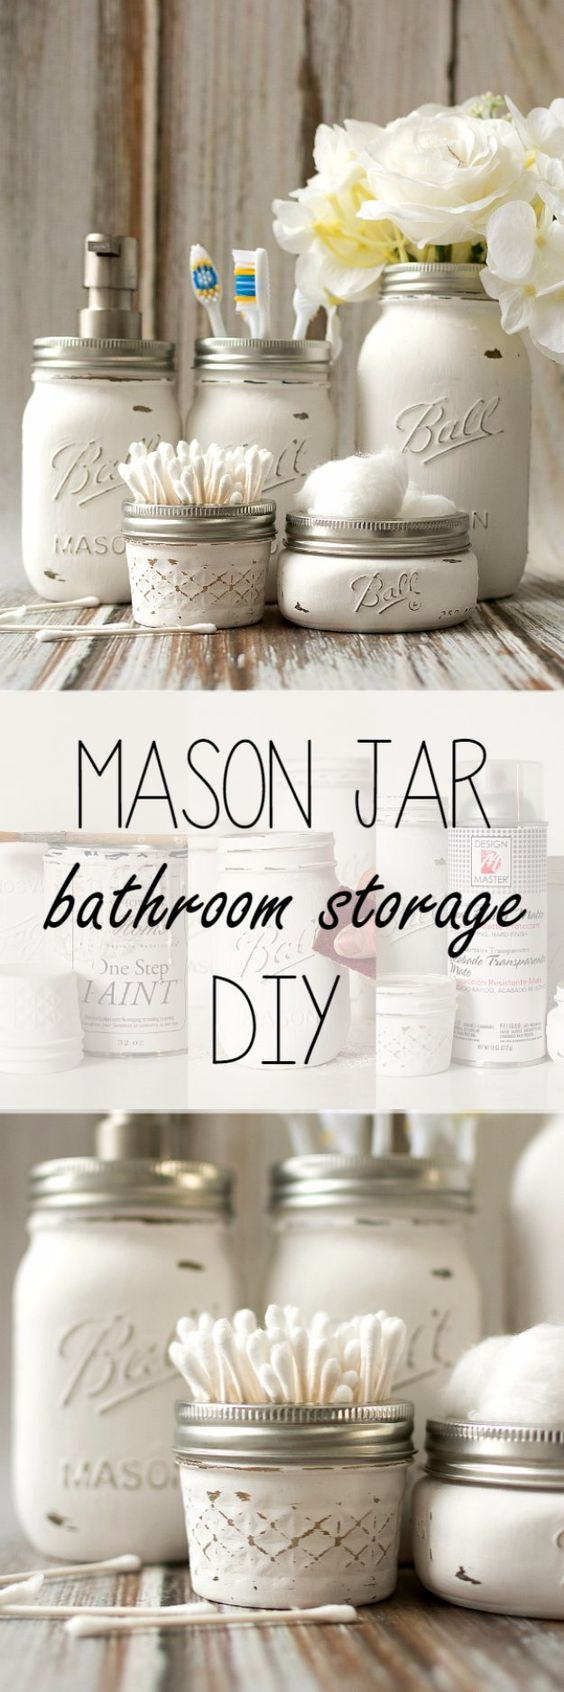 DIY Bathroom Decor Ideas - Mason Jar Bathroom Storage Accessories - Cool Do It Yourself Bath Ideas on A Budget, Rustic Bathroom Fixtures, Creative Wall Art, Rugs, Mason Jar Accessories and Easy Projects http://diyjoy.com/diy-bathroom-decor-ideas: